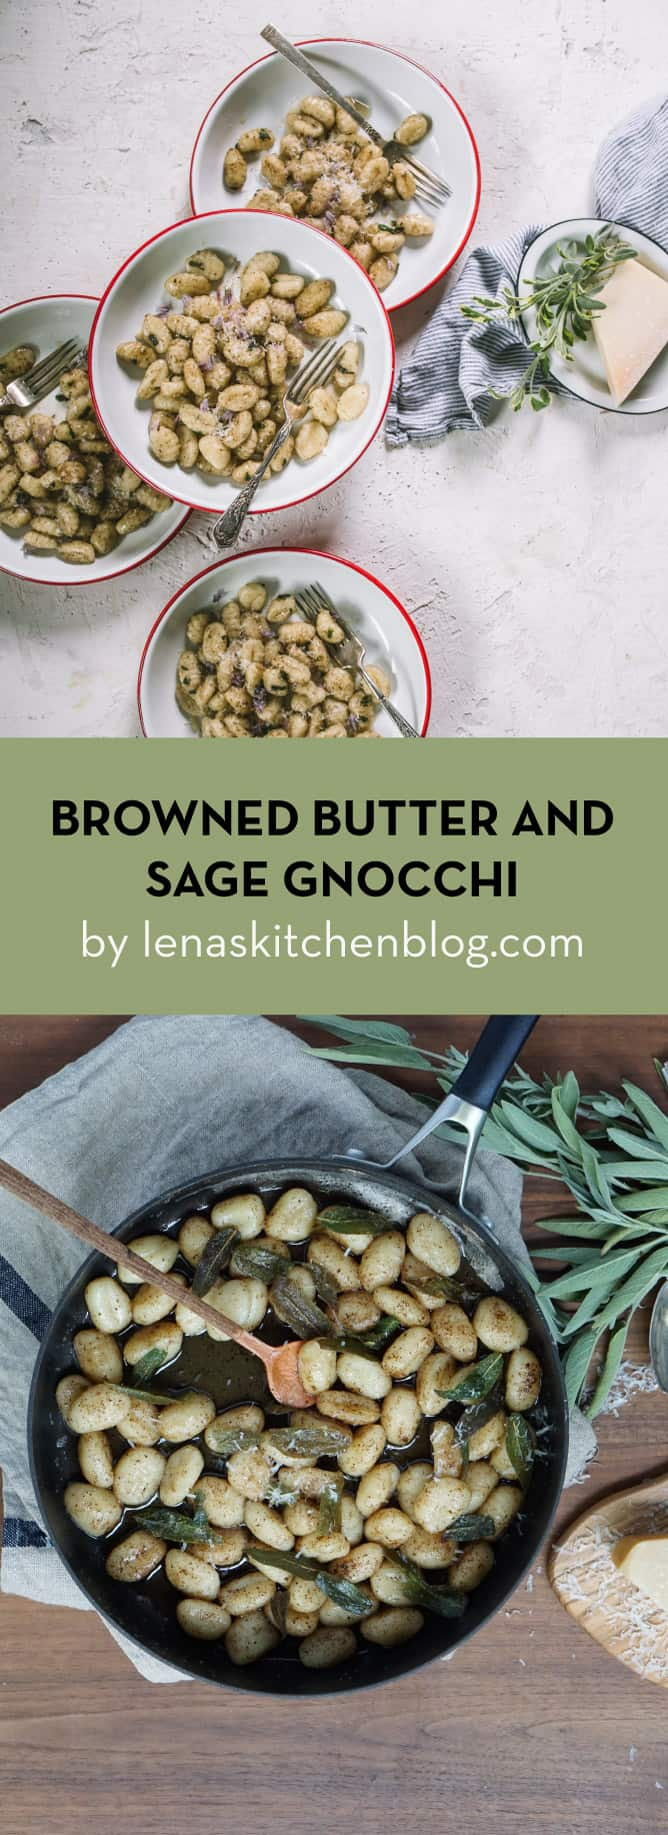 BROWNED BUTTER AND SAGE GNOCCHI by lenaskitchenblog.com